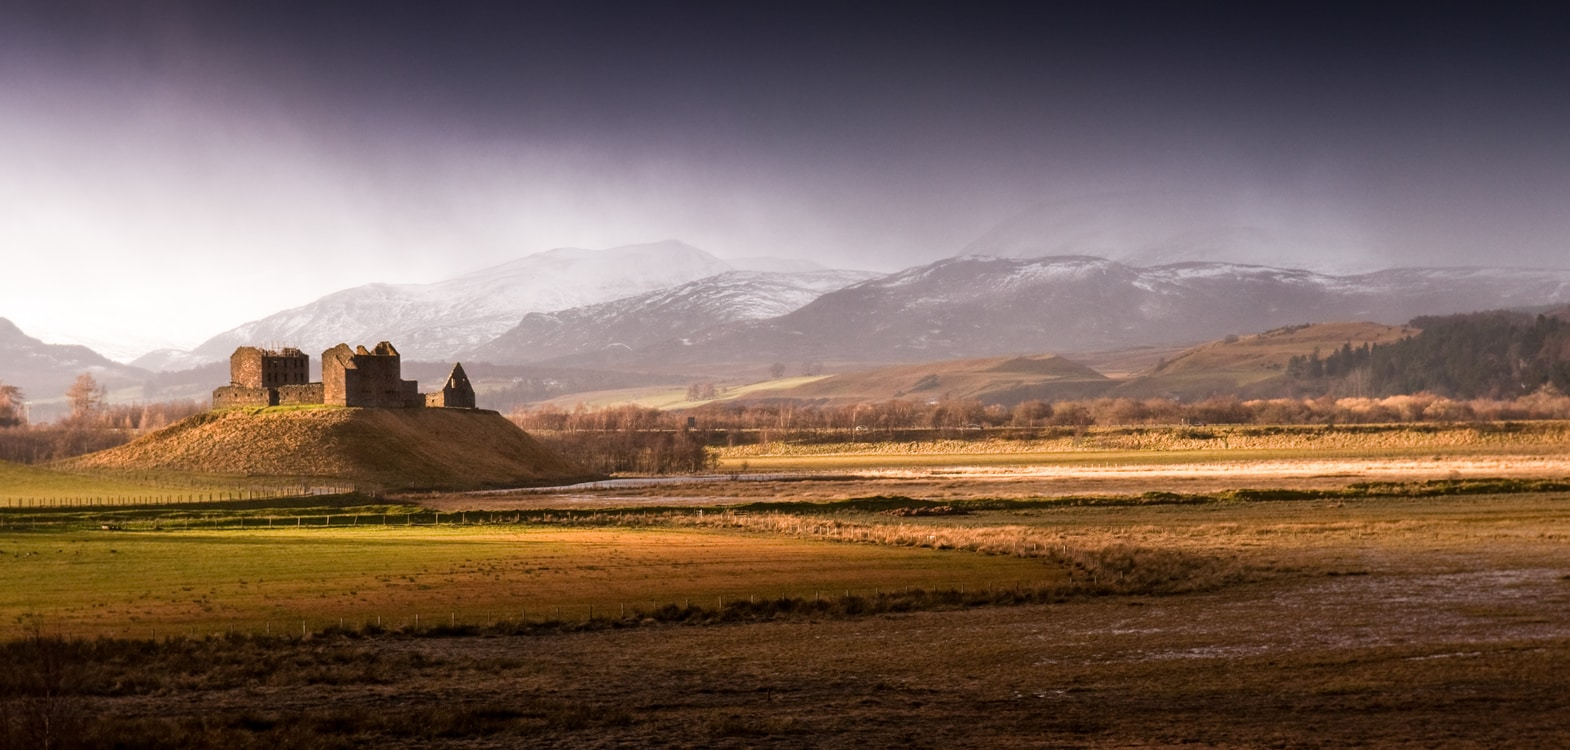 Ruthven Barracks ruin on a small hill in the shadow of the Cairngorm Mountains in the Highlands of Scotland